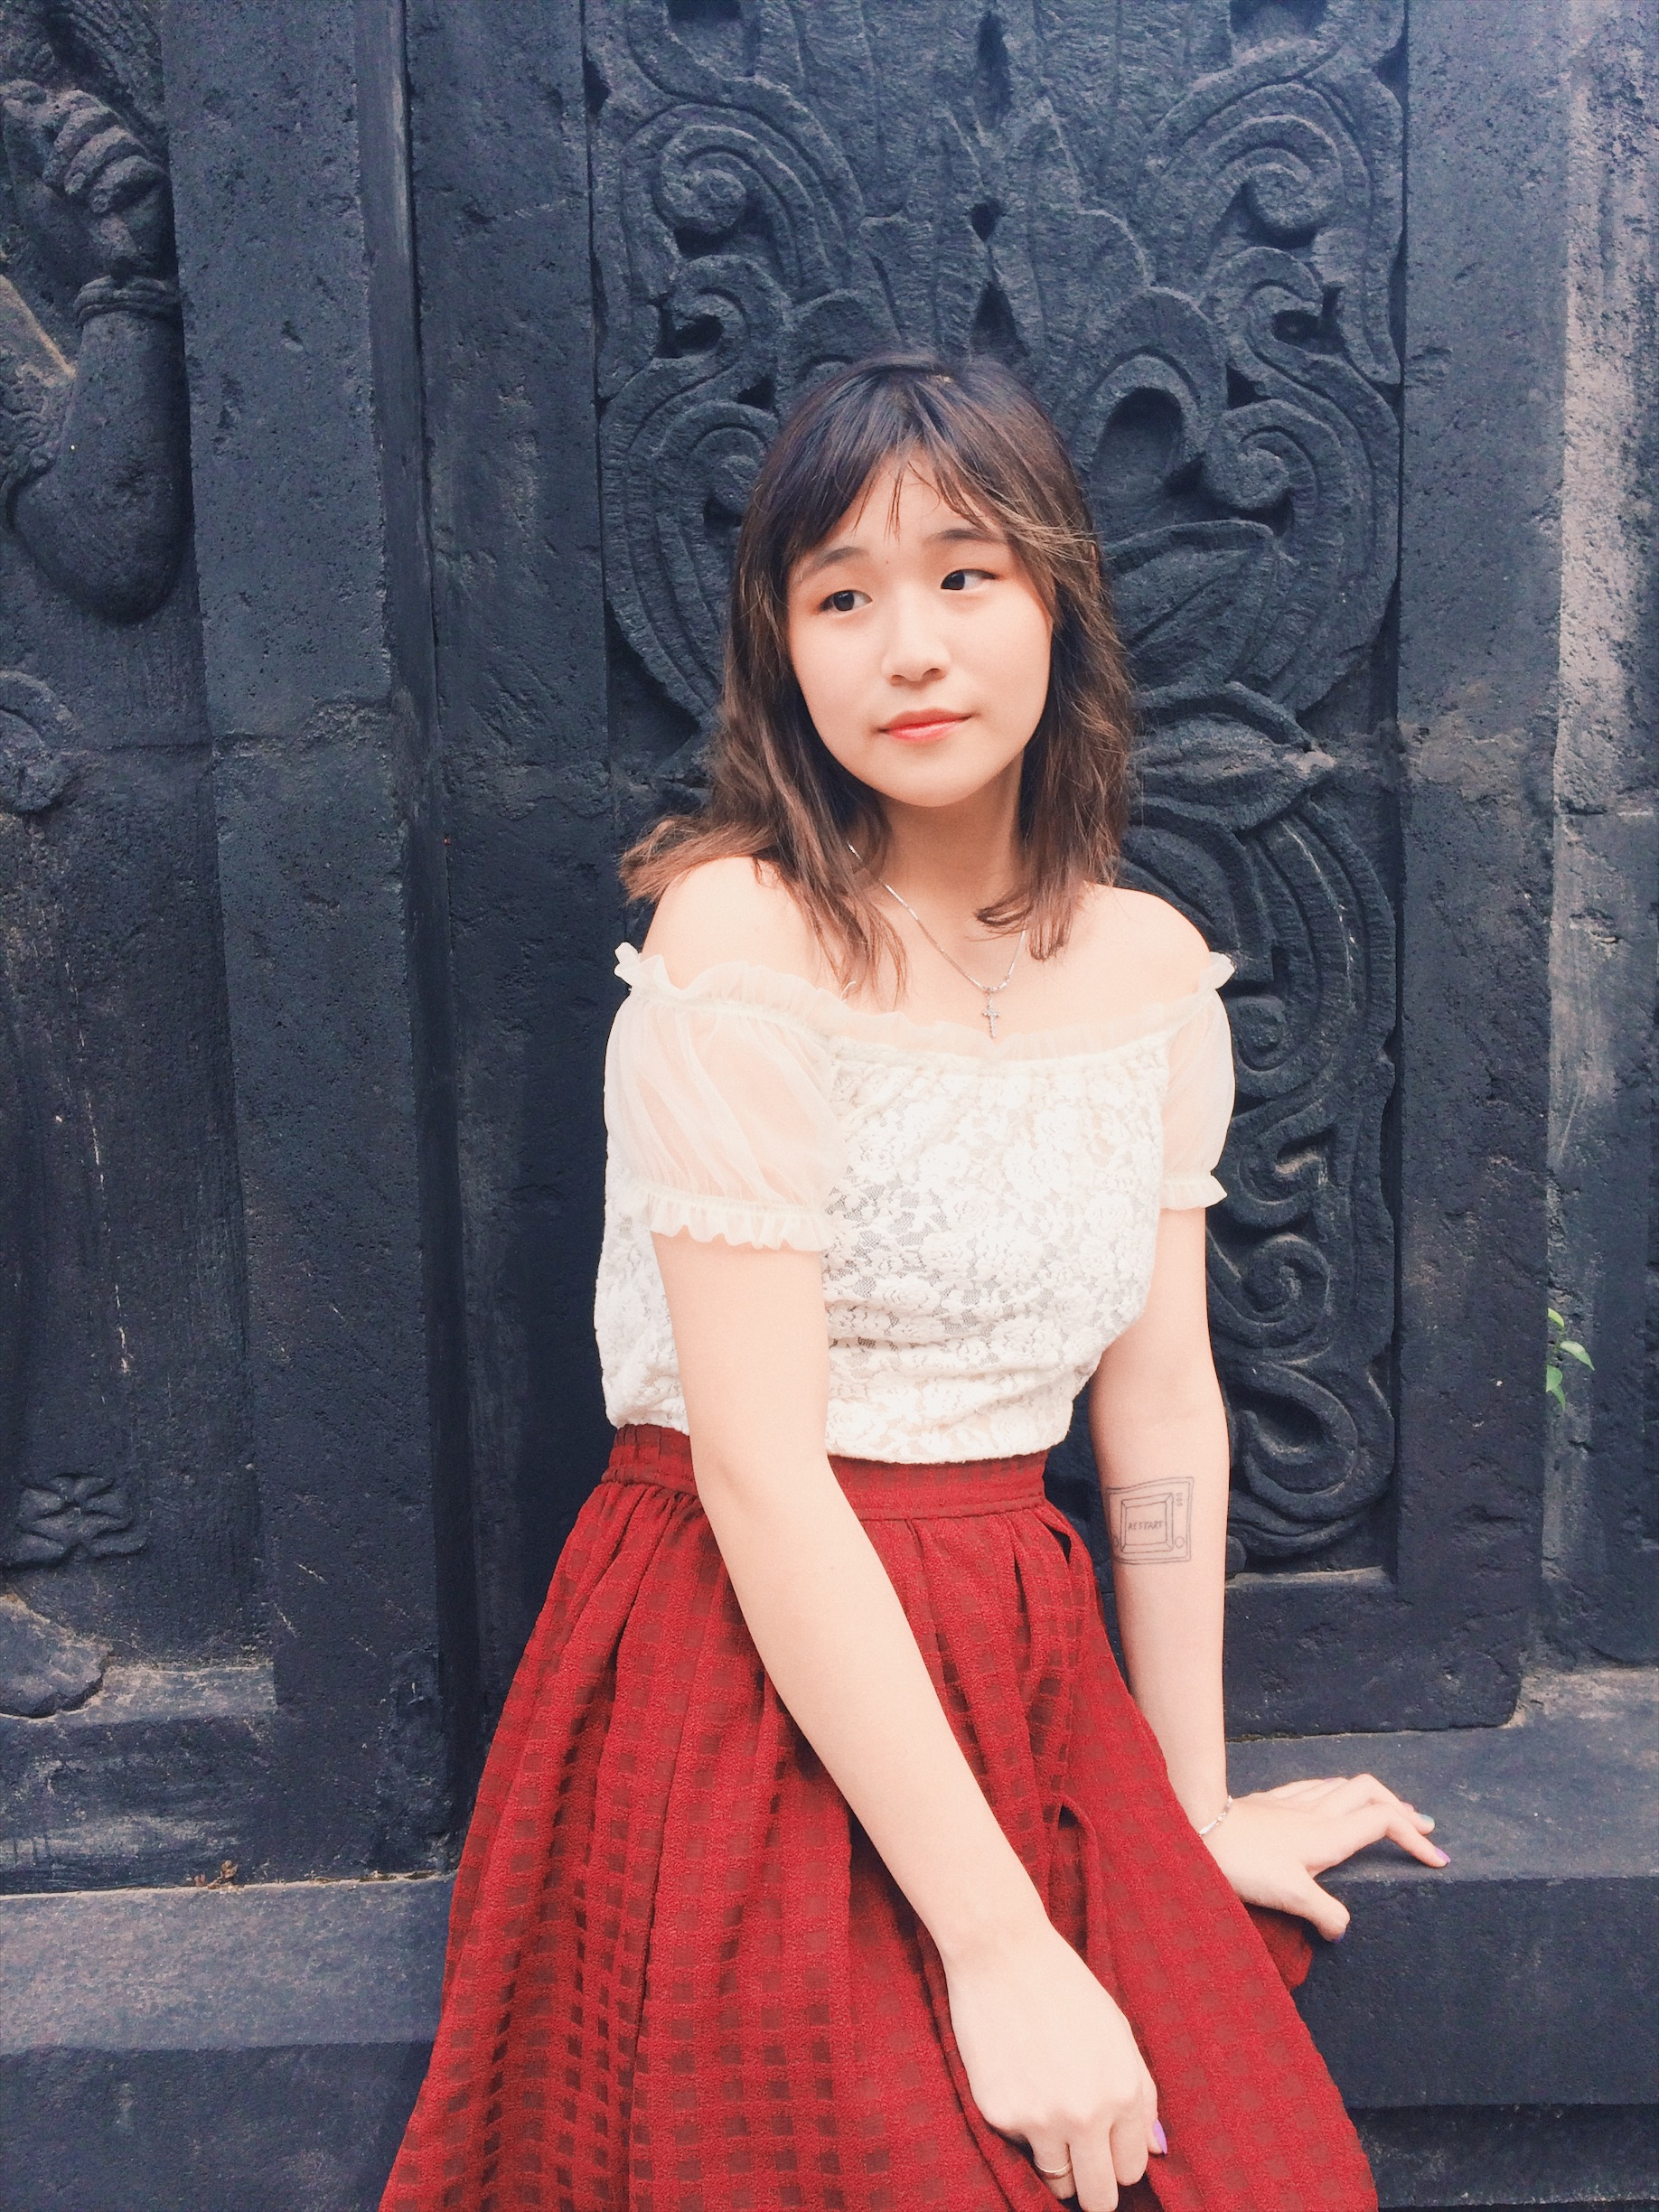 I pretend I took this photo in Bali, but actually I asked my husband to take a bunch of pictures in the park right in front of his friend's house.